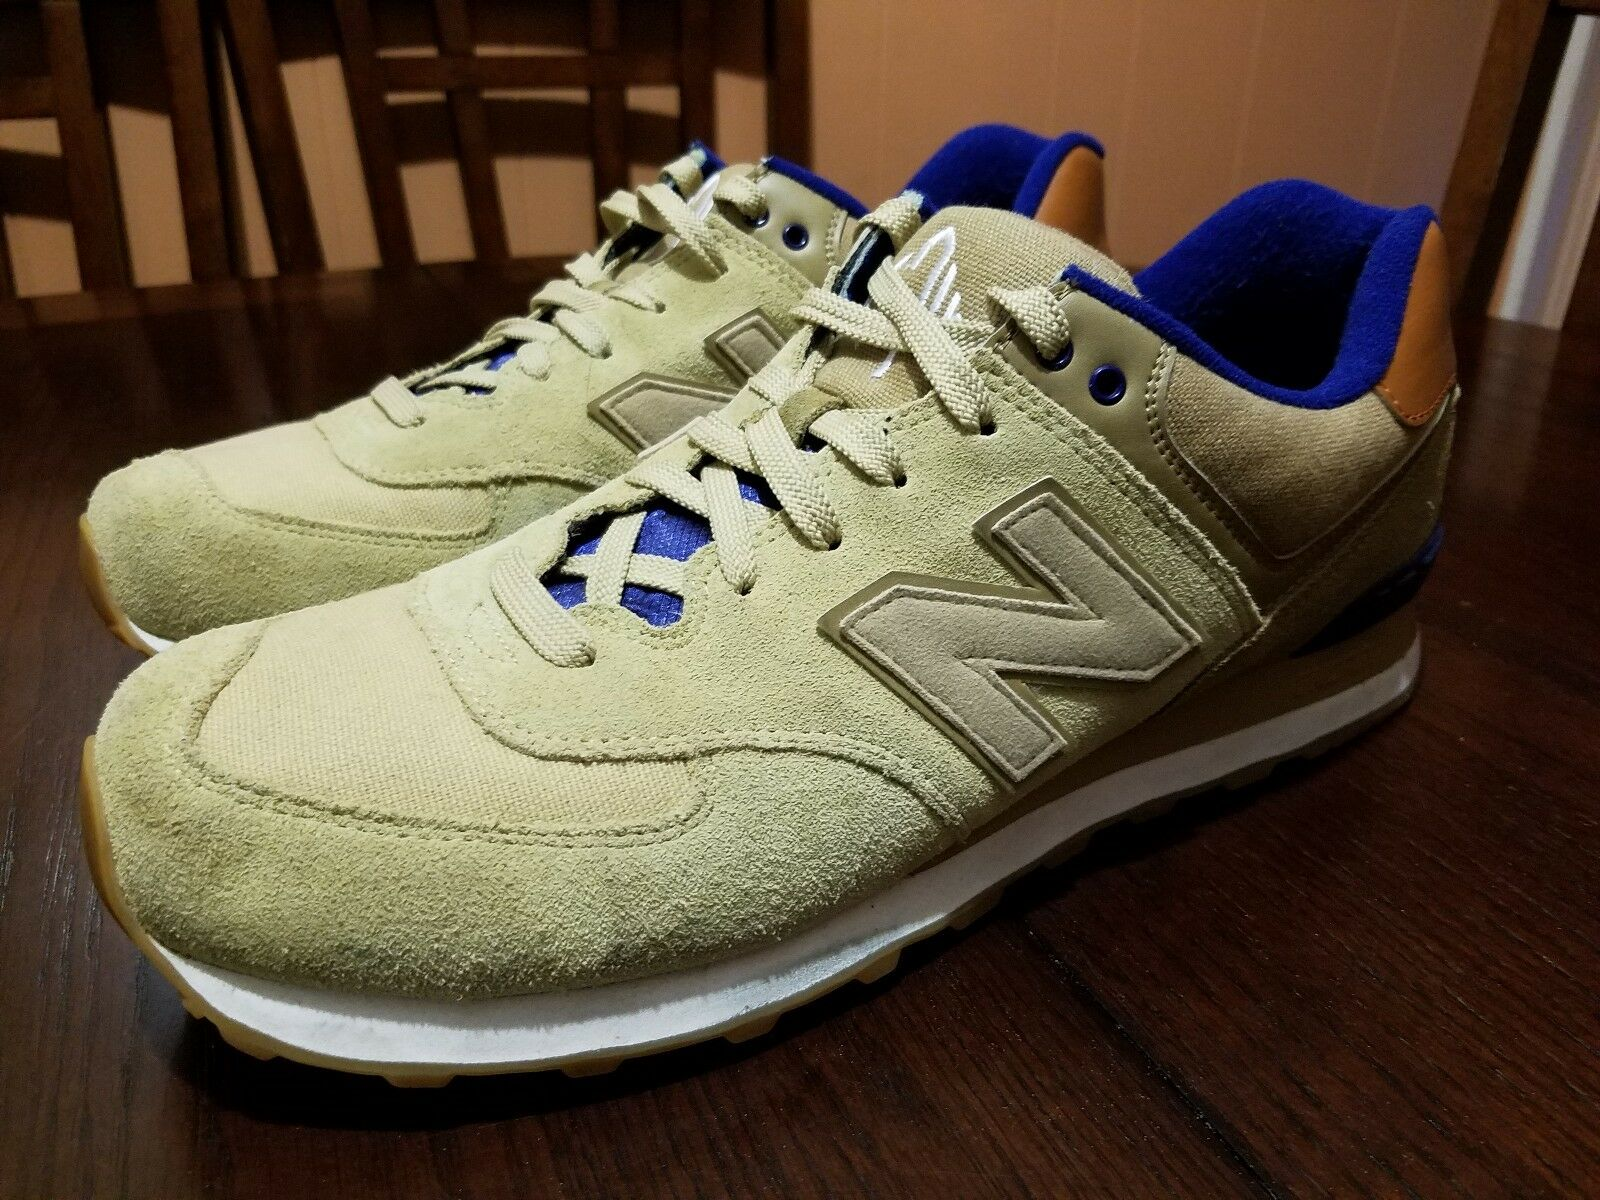 New Balance Men Beige, Tan, bluee, Suede Casual Athletic shoes Size 13 ML574NED